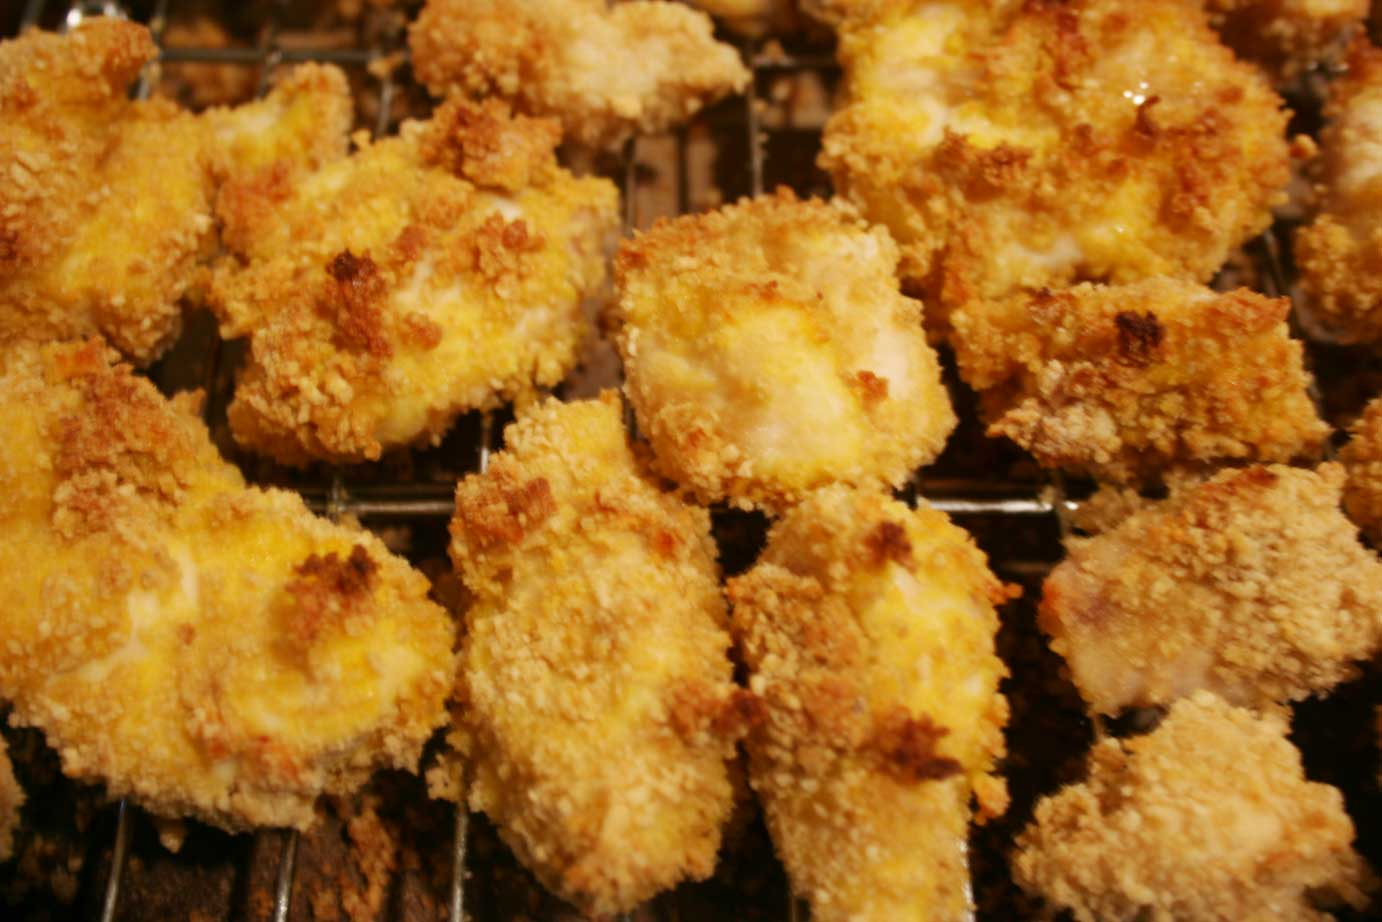 Everyday Finesse: Baked Gluten-free Chicken nuggets